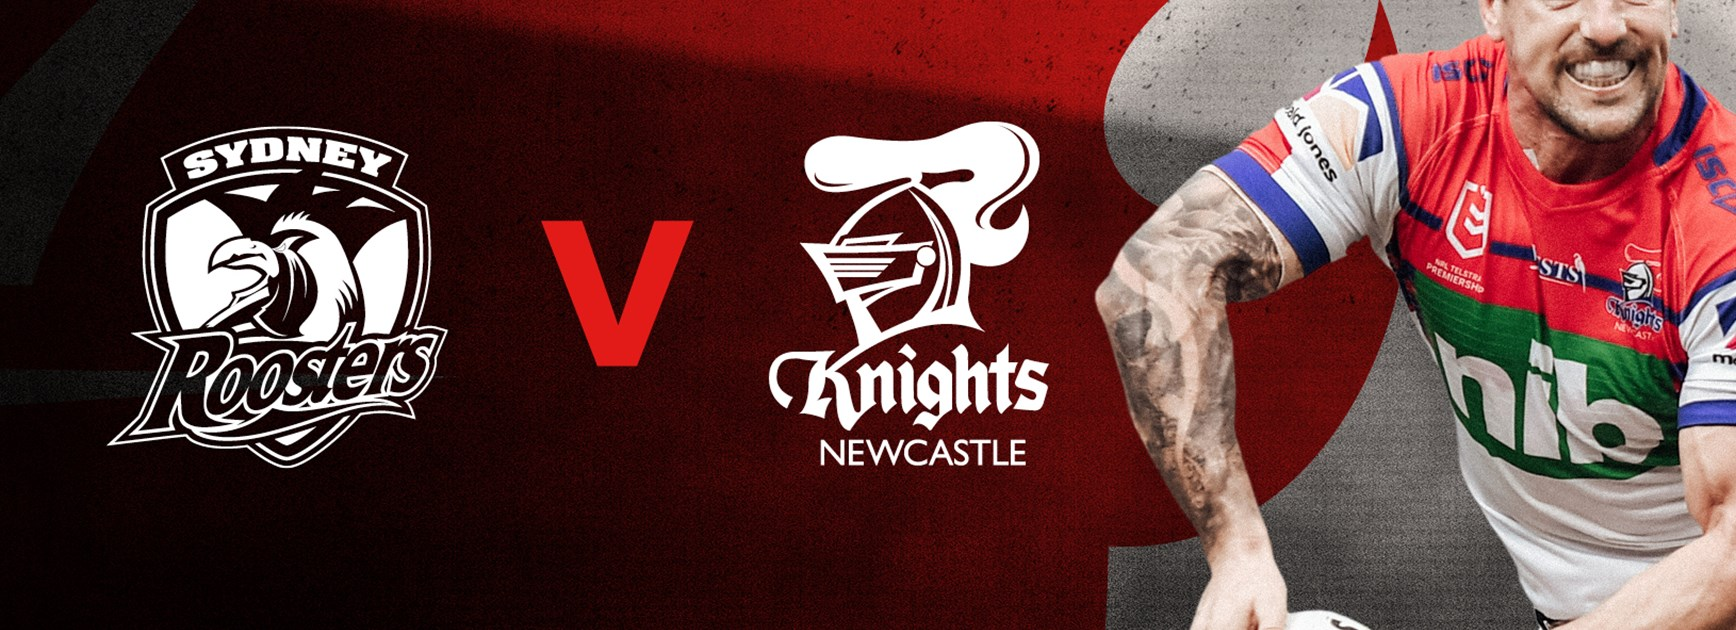 Knights v Roosters Round 18 NRL team